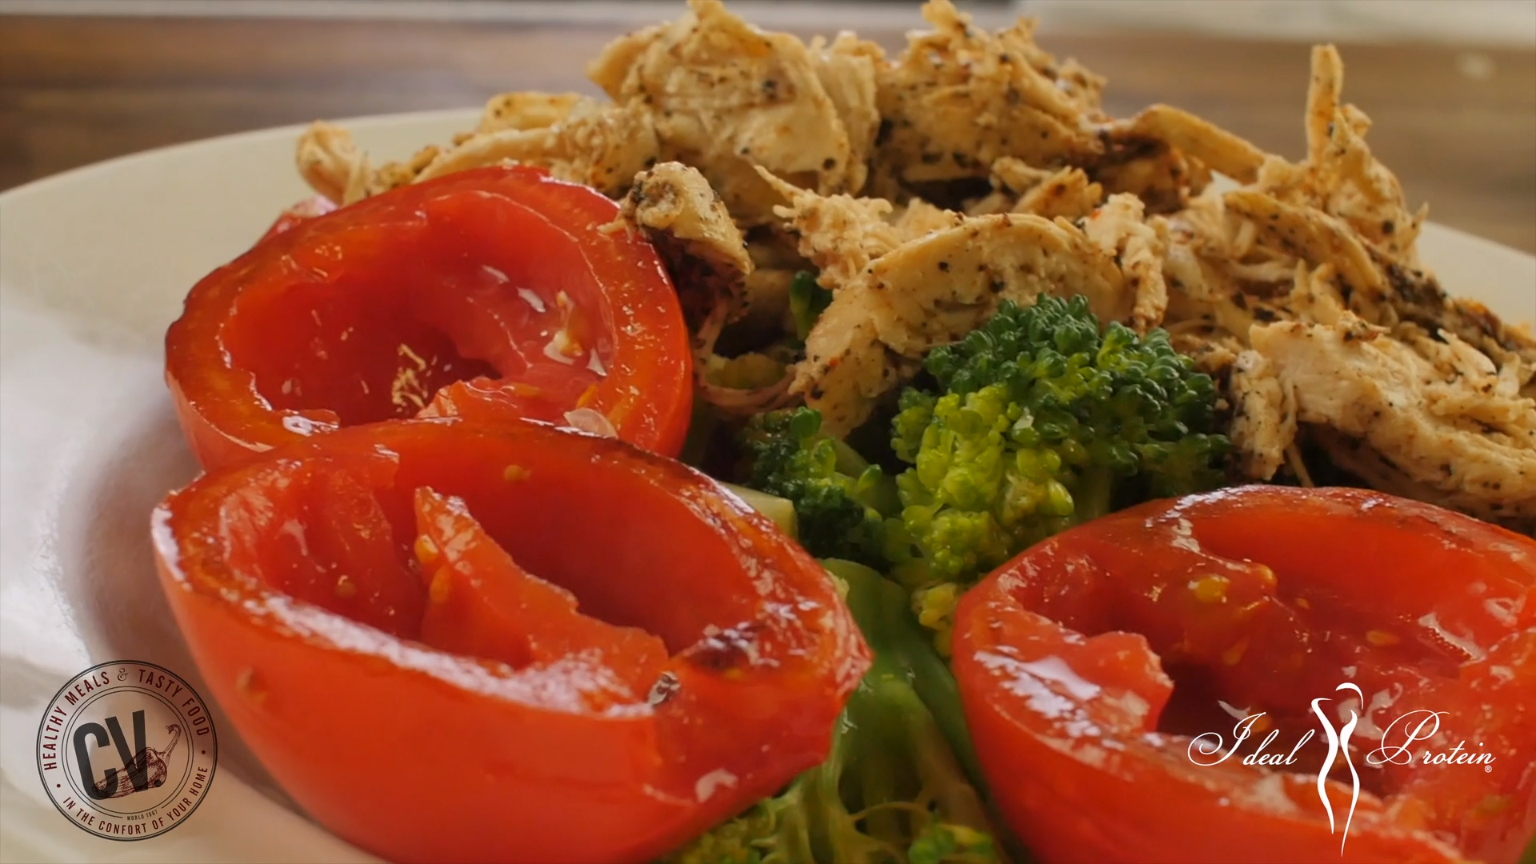 Chicken charred tomato &  broccoli salad. This Ideal Protein Phase 1 Recipe is delicious and is also great for Phase 2 and Phase 3. Ideal Protein Protocol helps you Lose weight fast and safely. #IdealProtein #idealproteinrecipesphase1dinner